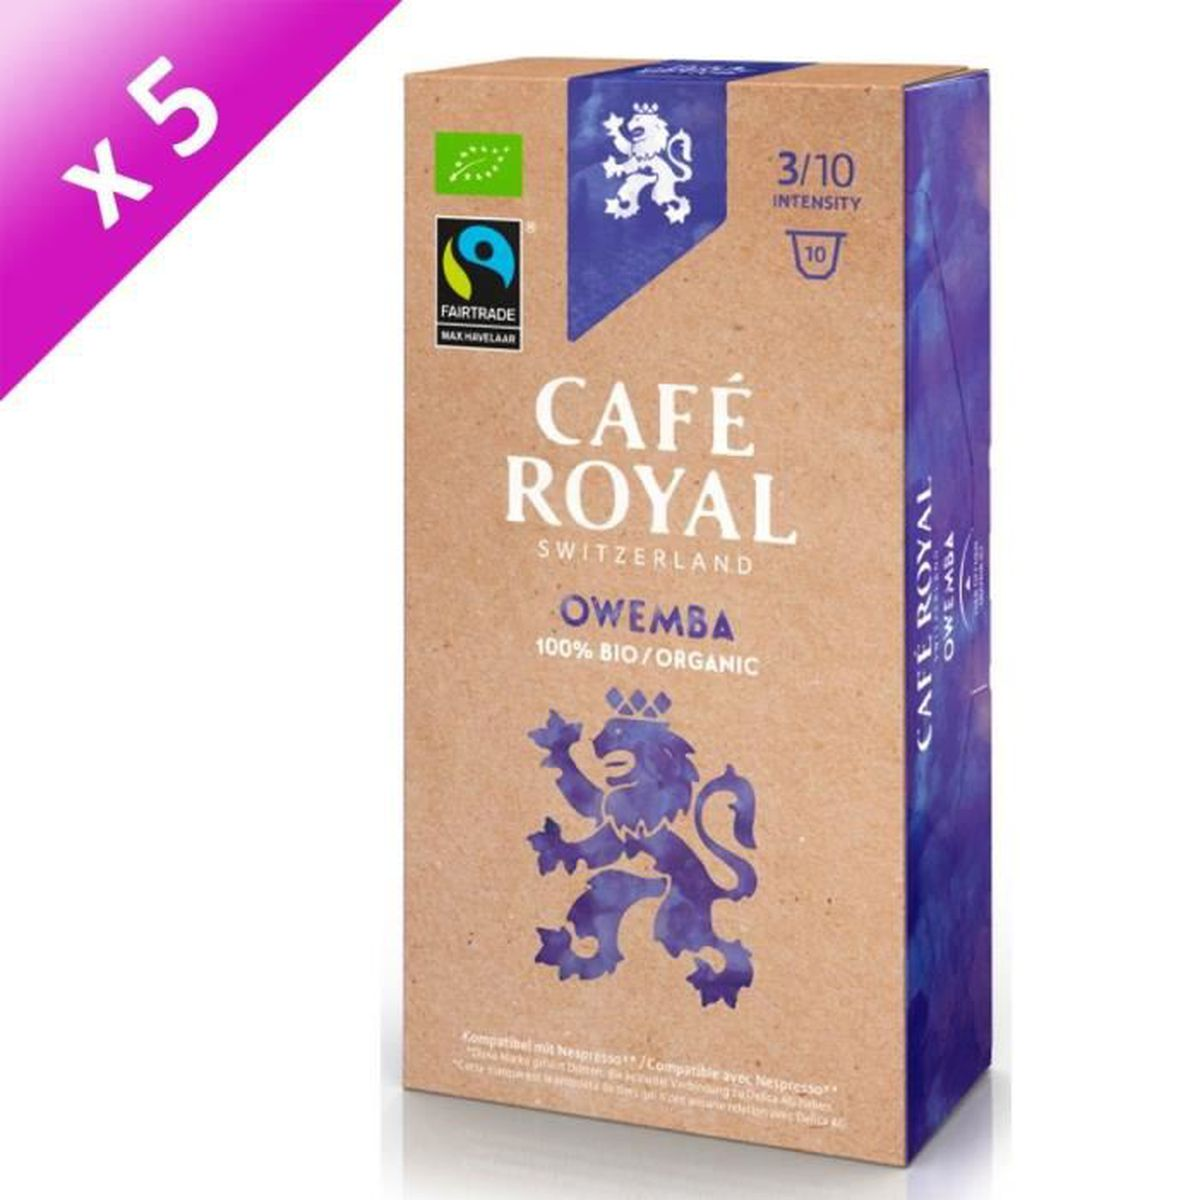 Cafe Royal Capsule Moins Cher